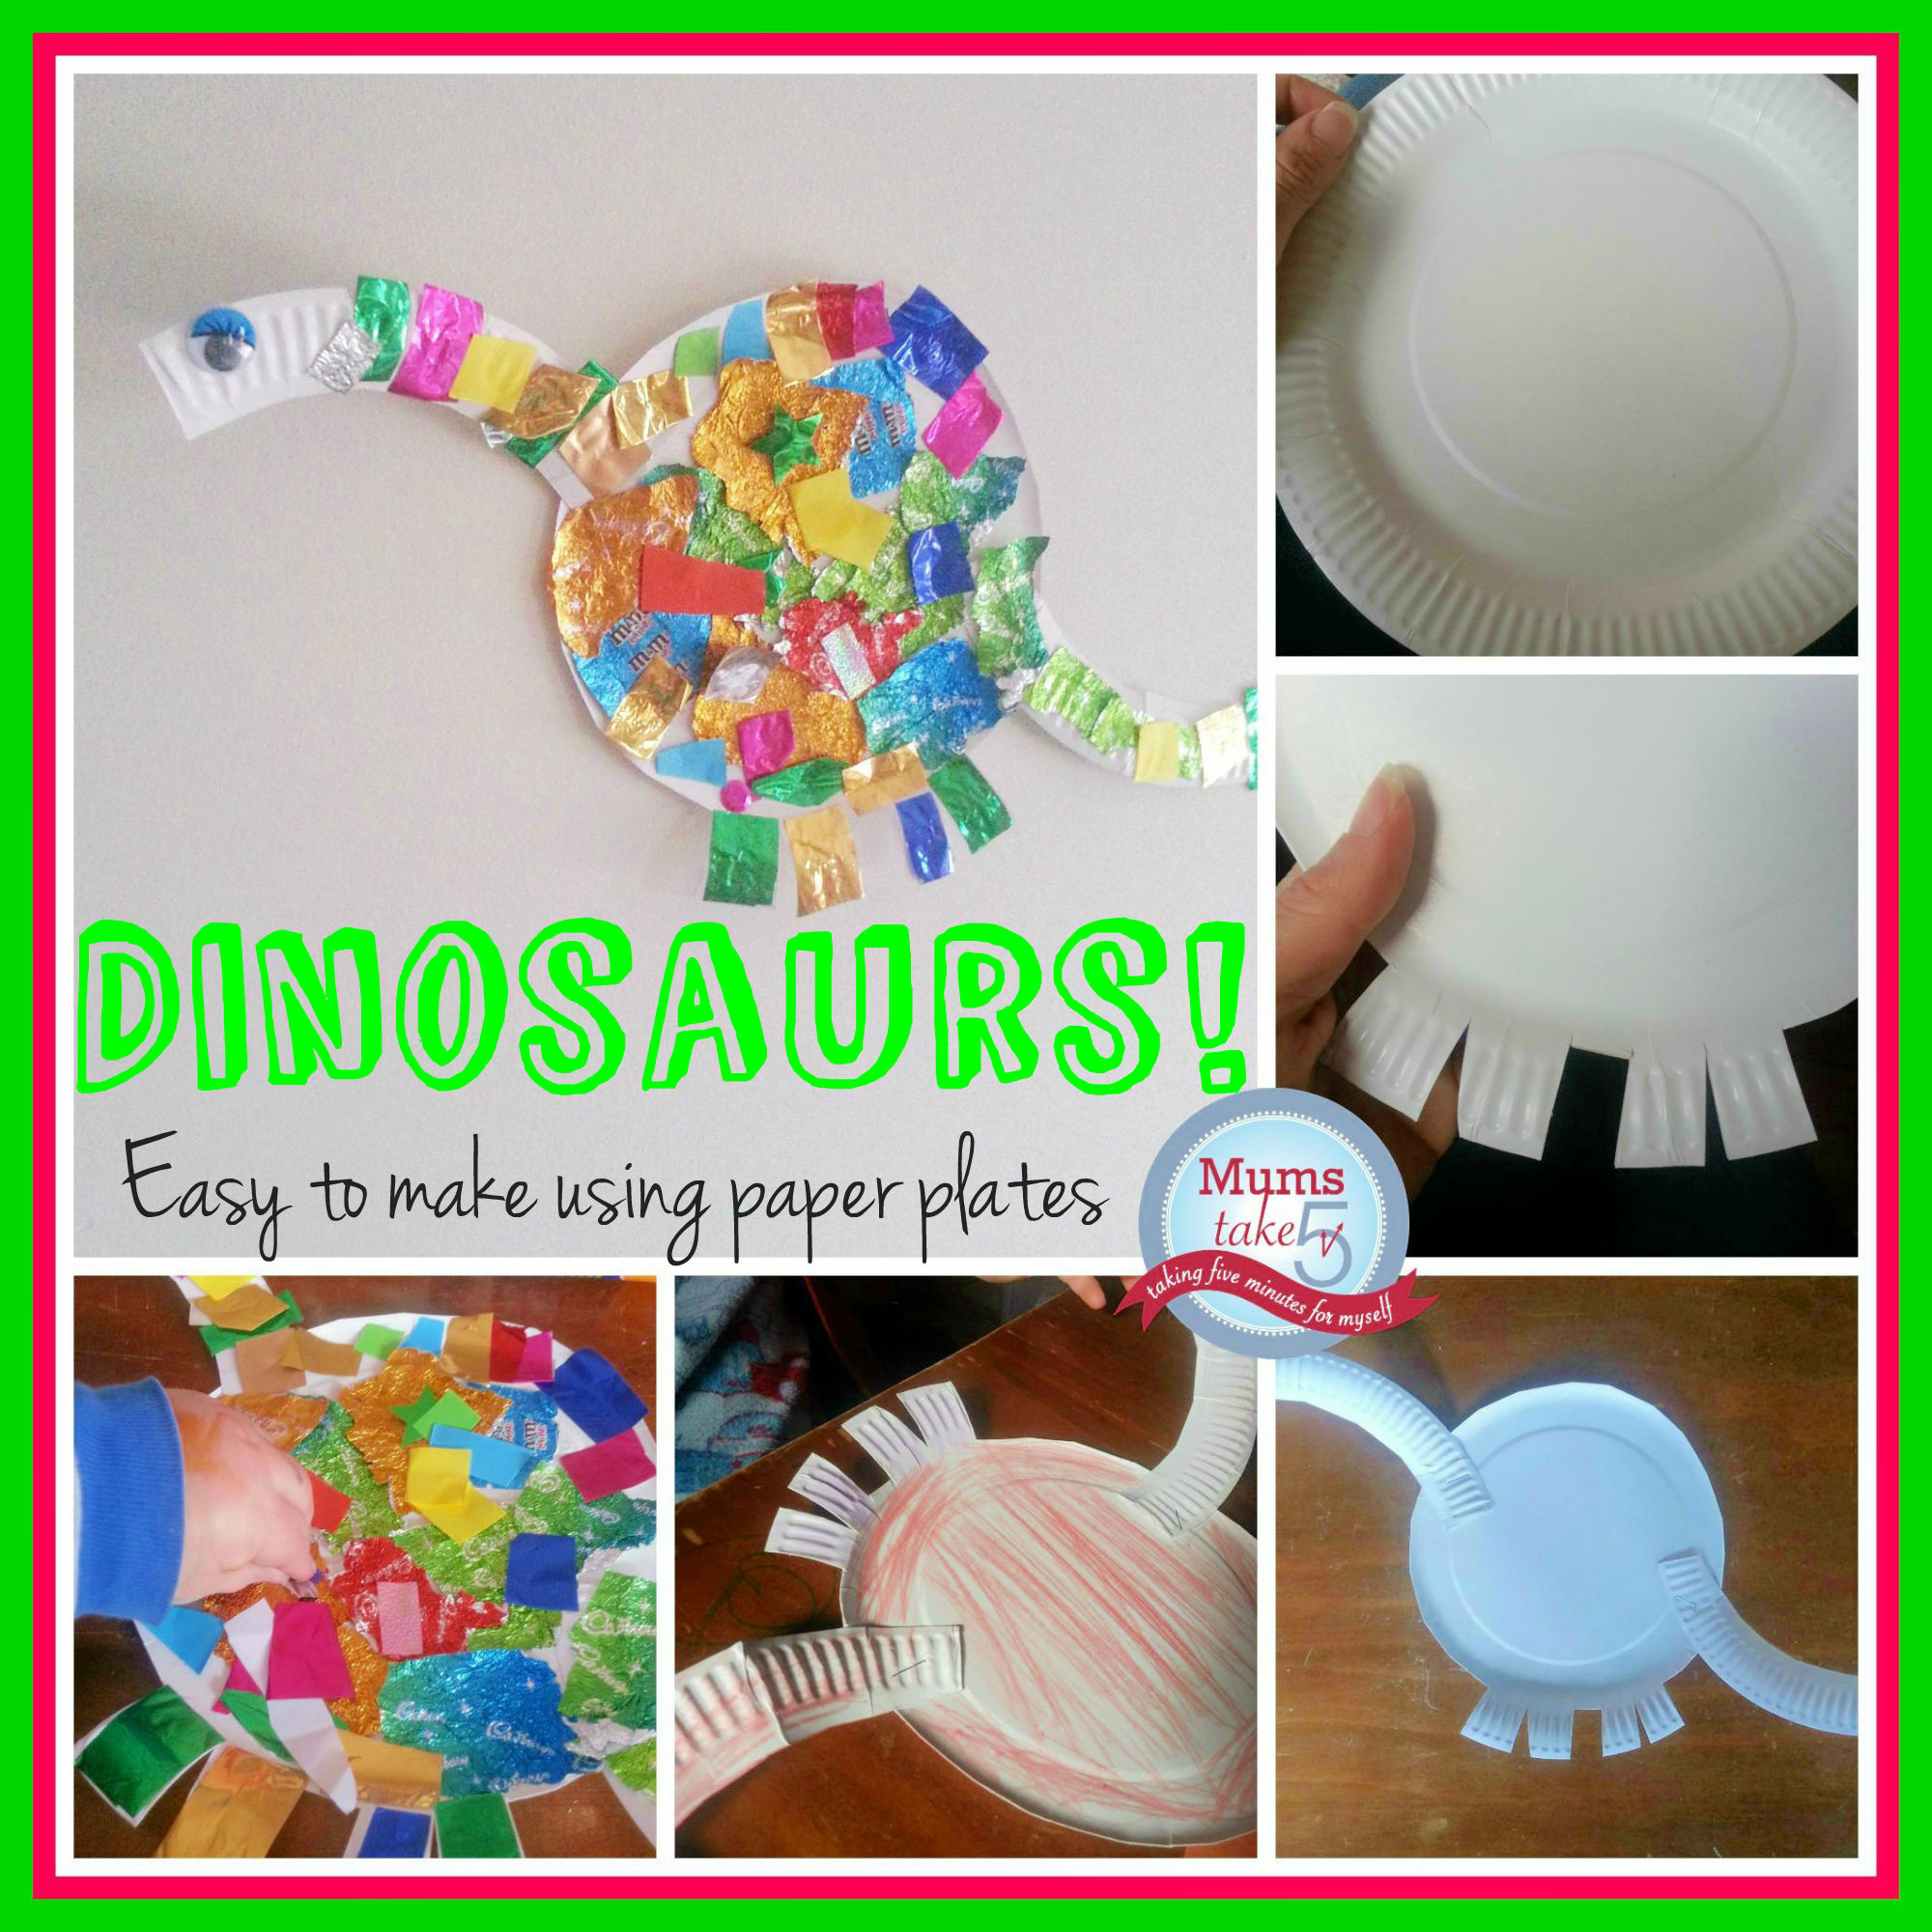 Dinosaurs kids craft easy kids craft paper plates